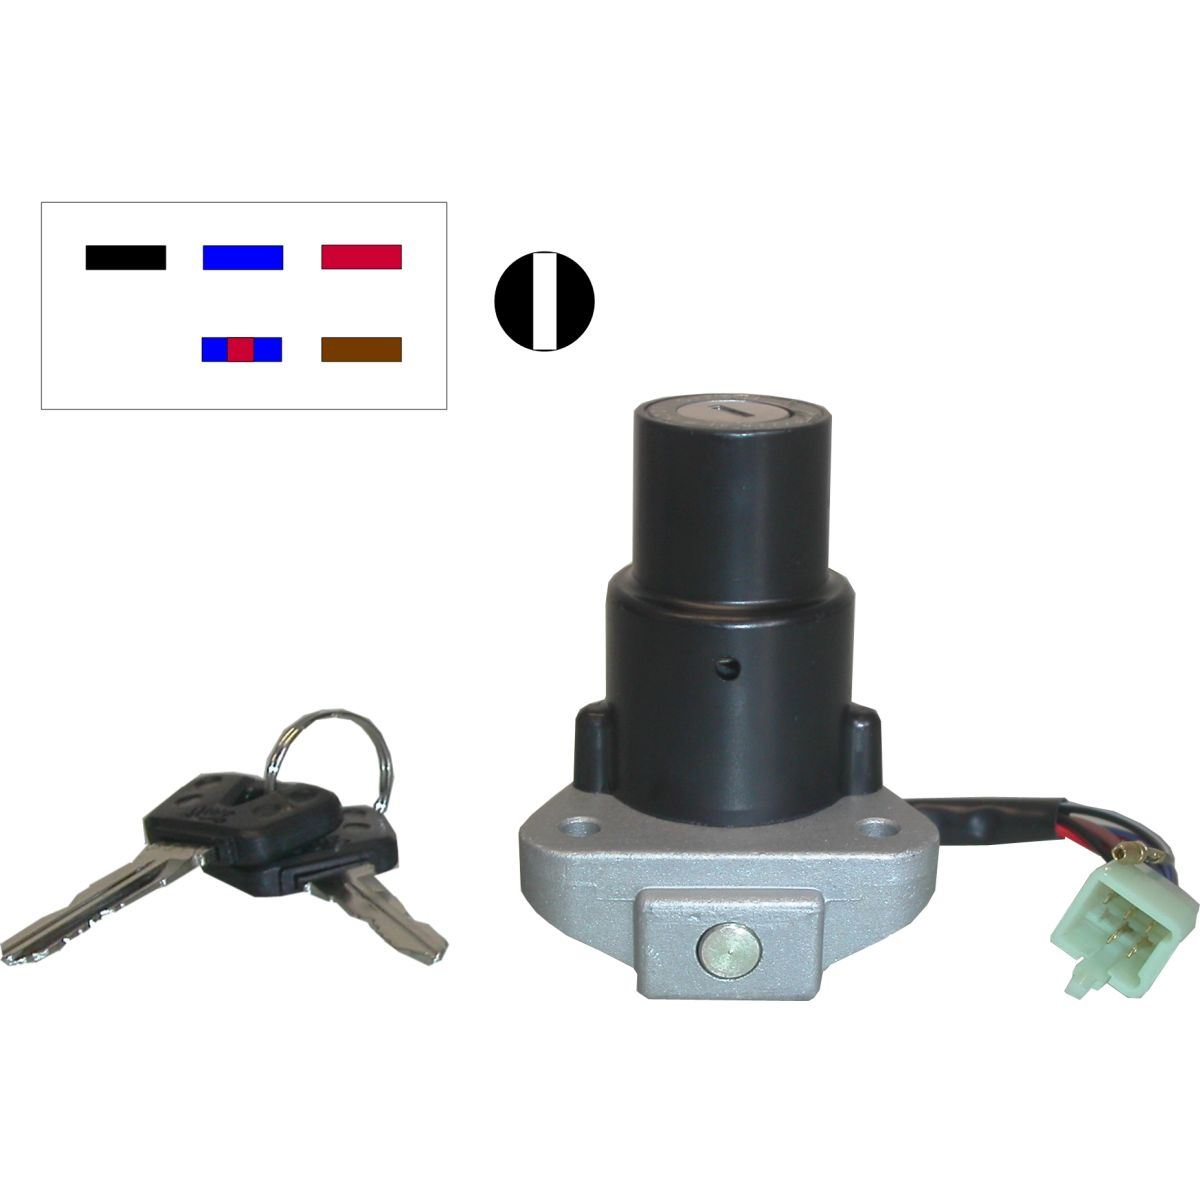 2HK Ignition Switch for 1986 Yamaha RD 125 LC Mk 2